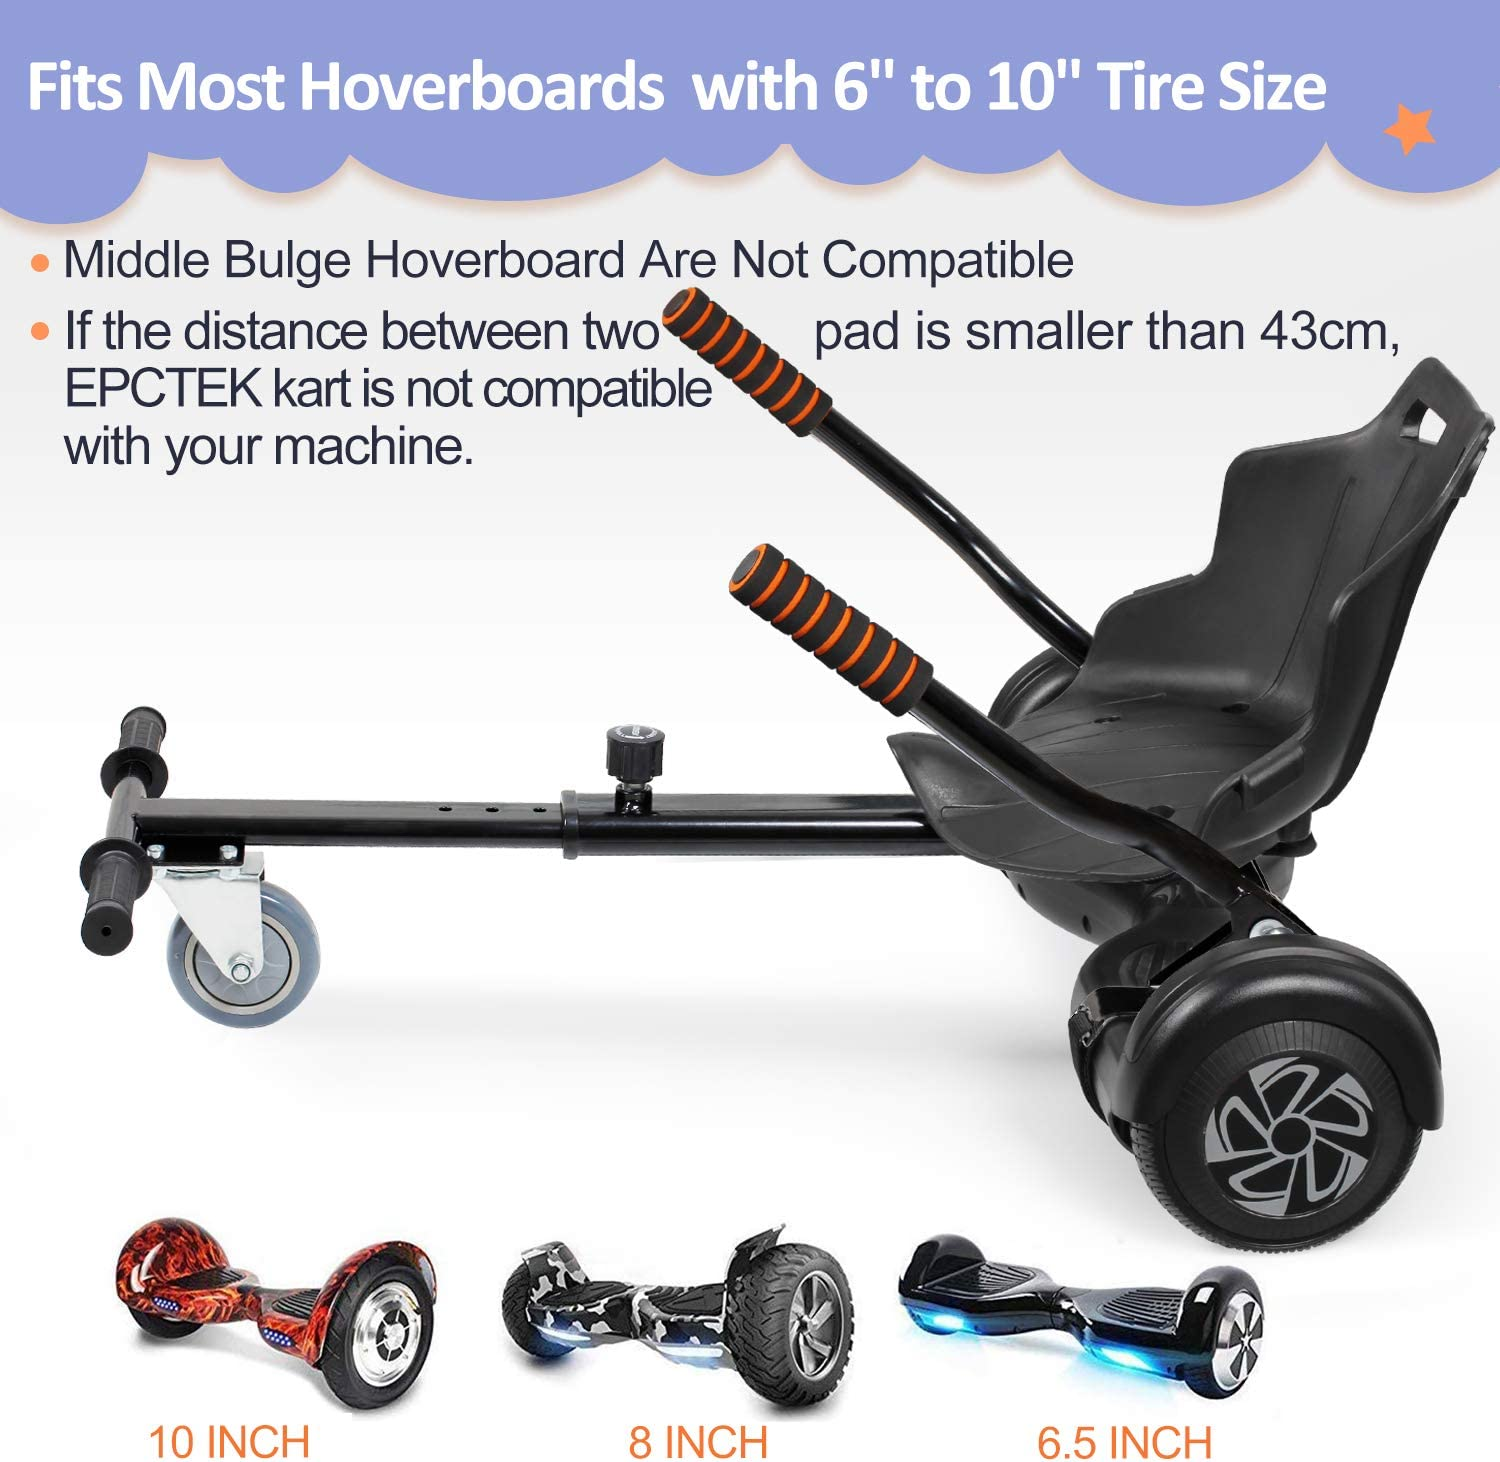 Hoverboard Not Included EPCTEK Hoverboard Kart Seat Attachment Accessory Compatible with 6.5 8.5 10 Two Wheel Self Balancing Hoverboard